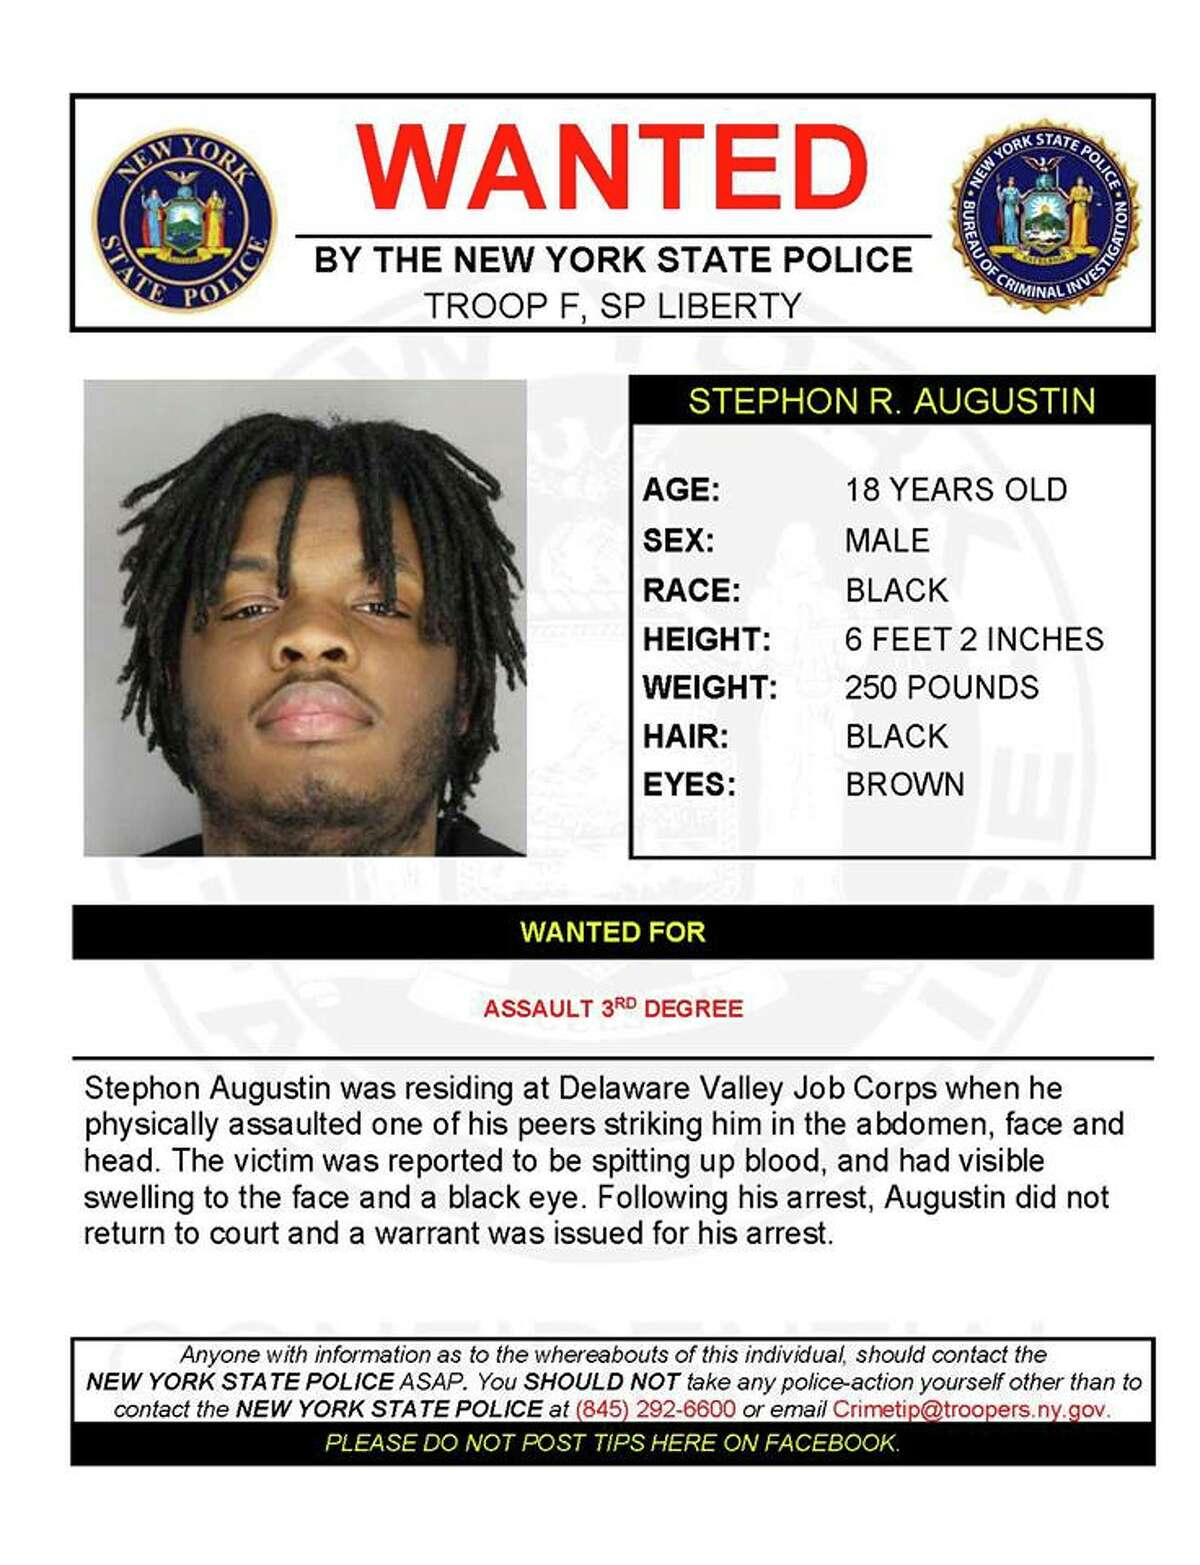 Stephon Augustin, 18, is wanted by State Police for assault on a fellow resident at Delaware Valley Job Corps in Delaware County. Police said he struck the other person in the abdomen, face and head, causing him to spit up blood and have visible swelling to his face and a black eye. Following his arrest, Augustin did not return to court and a warrant was issued for his arrest.